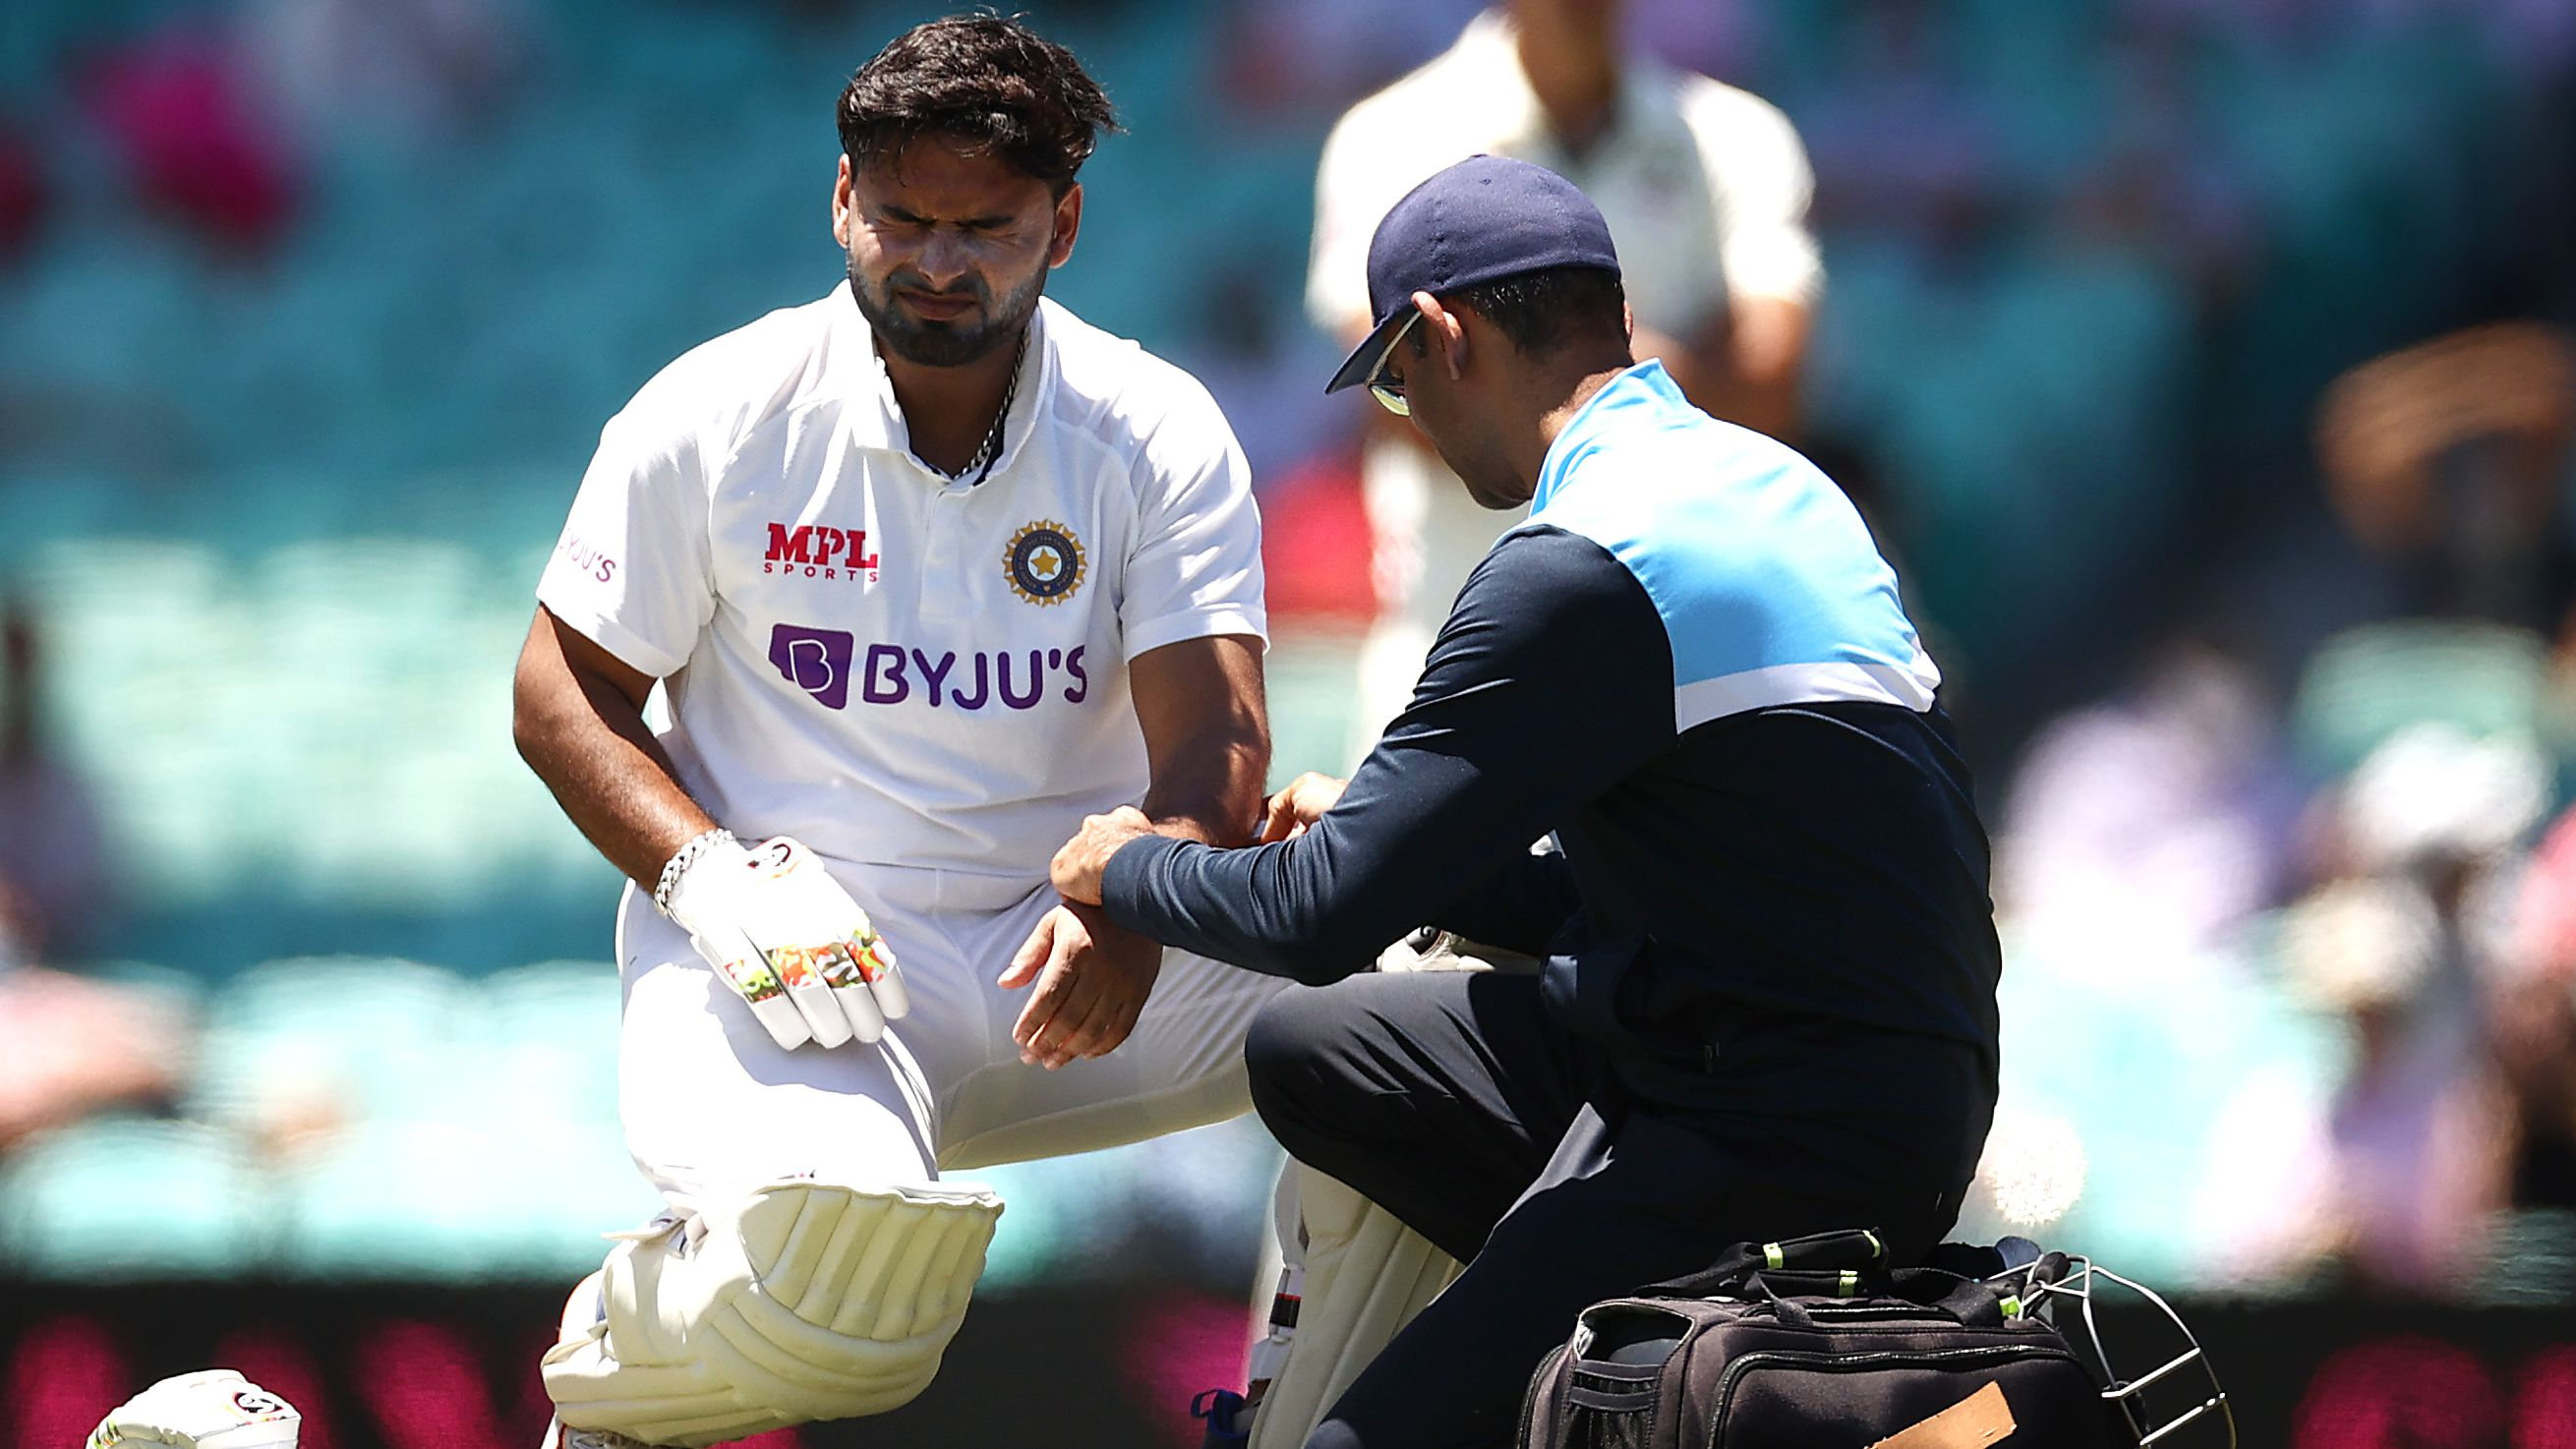 Rishabh Pant of India reacts after being struck by a delivery from Pat Cummins of Australia.